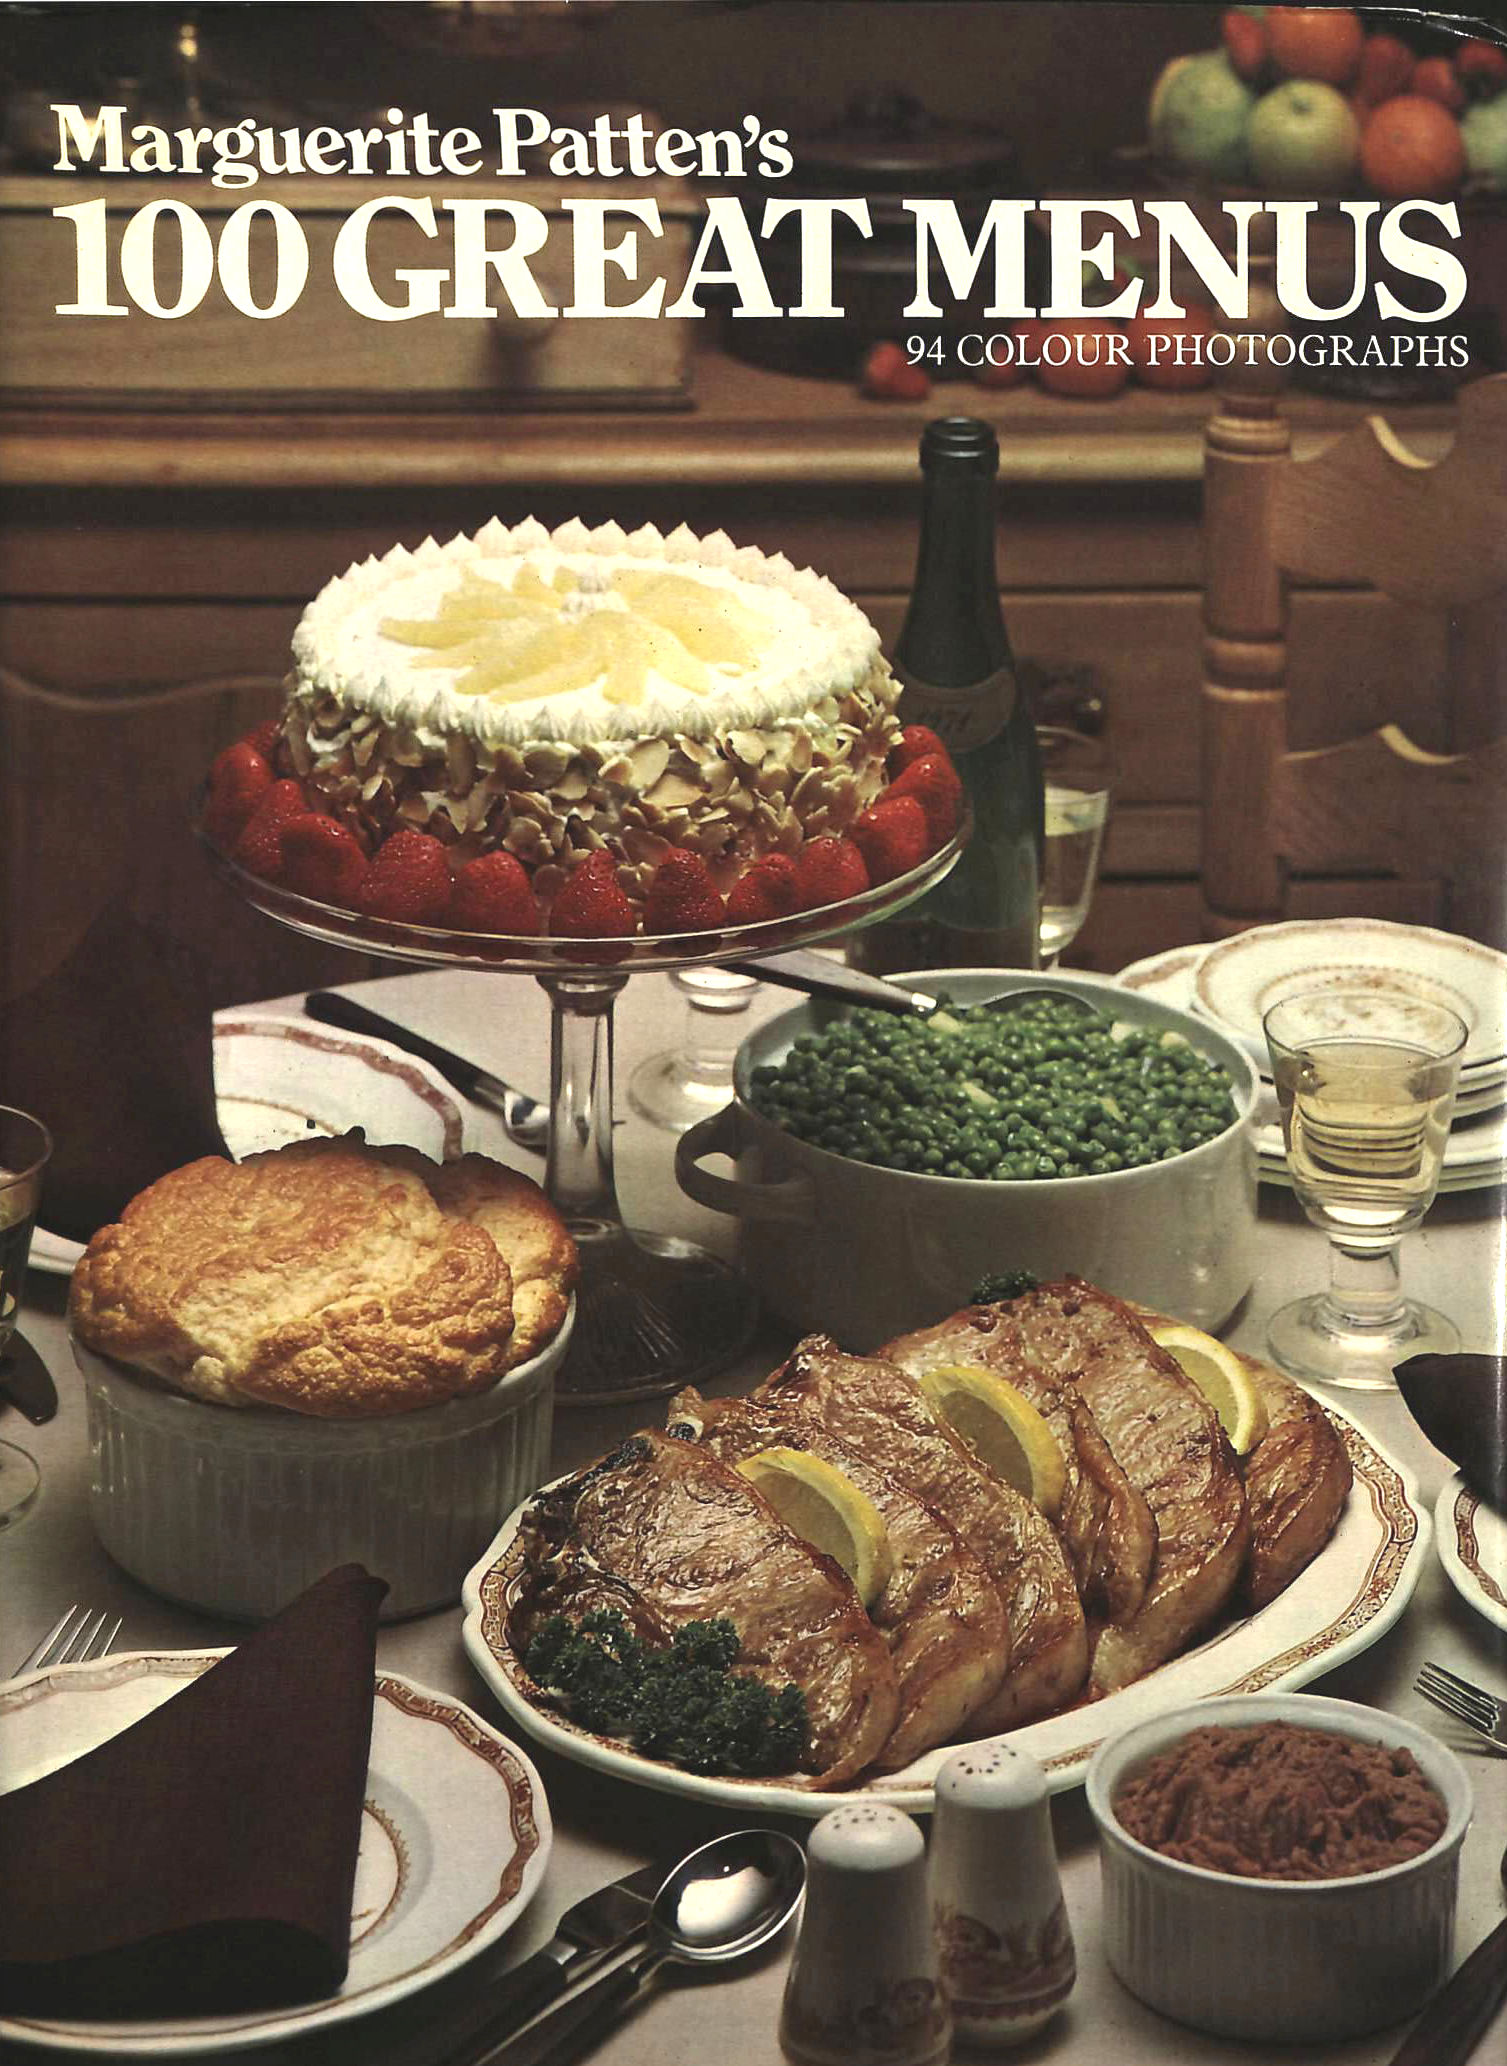 Image for Marguerite Patten's 100 Great Menus